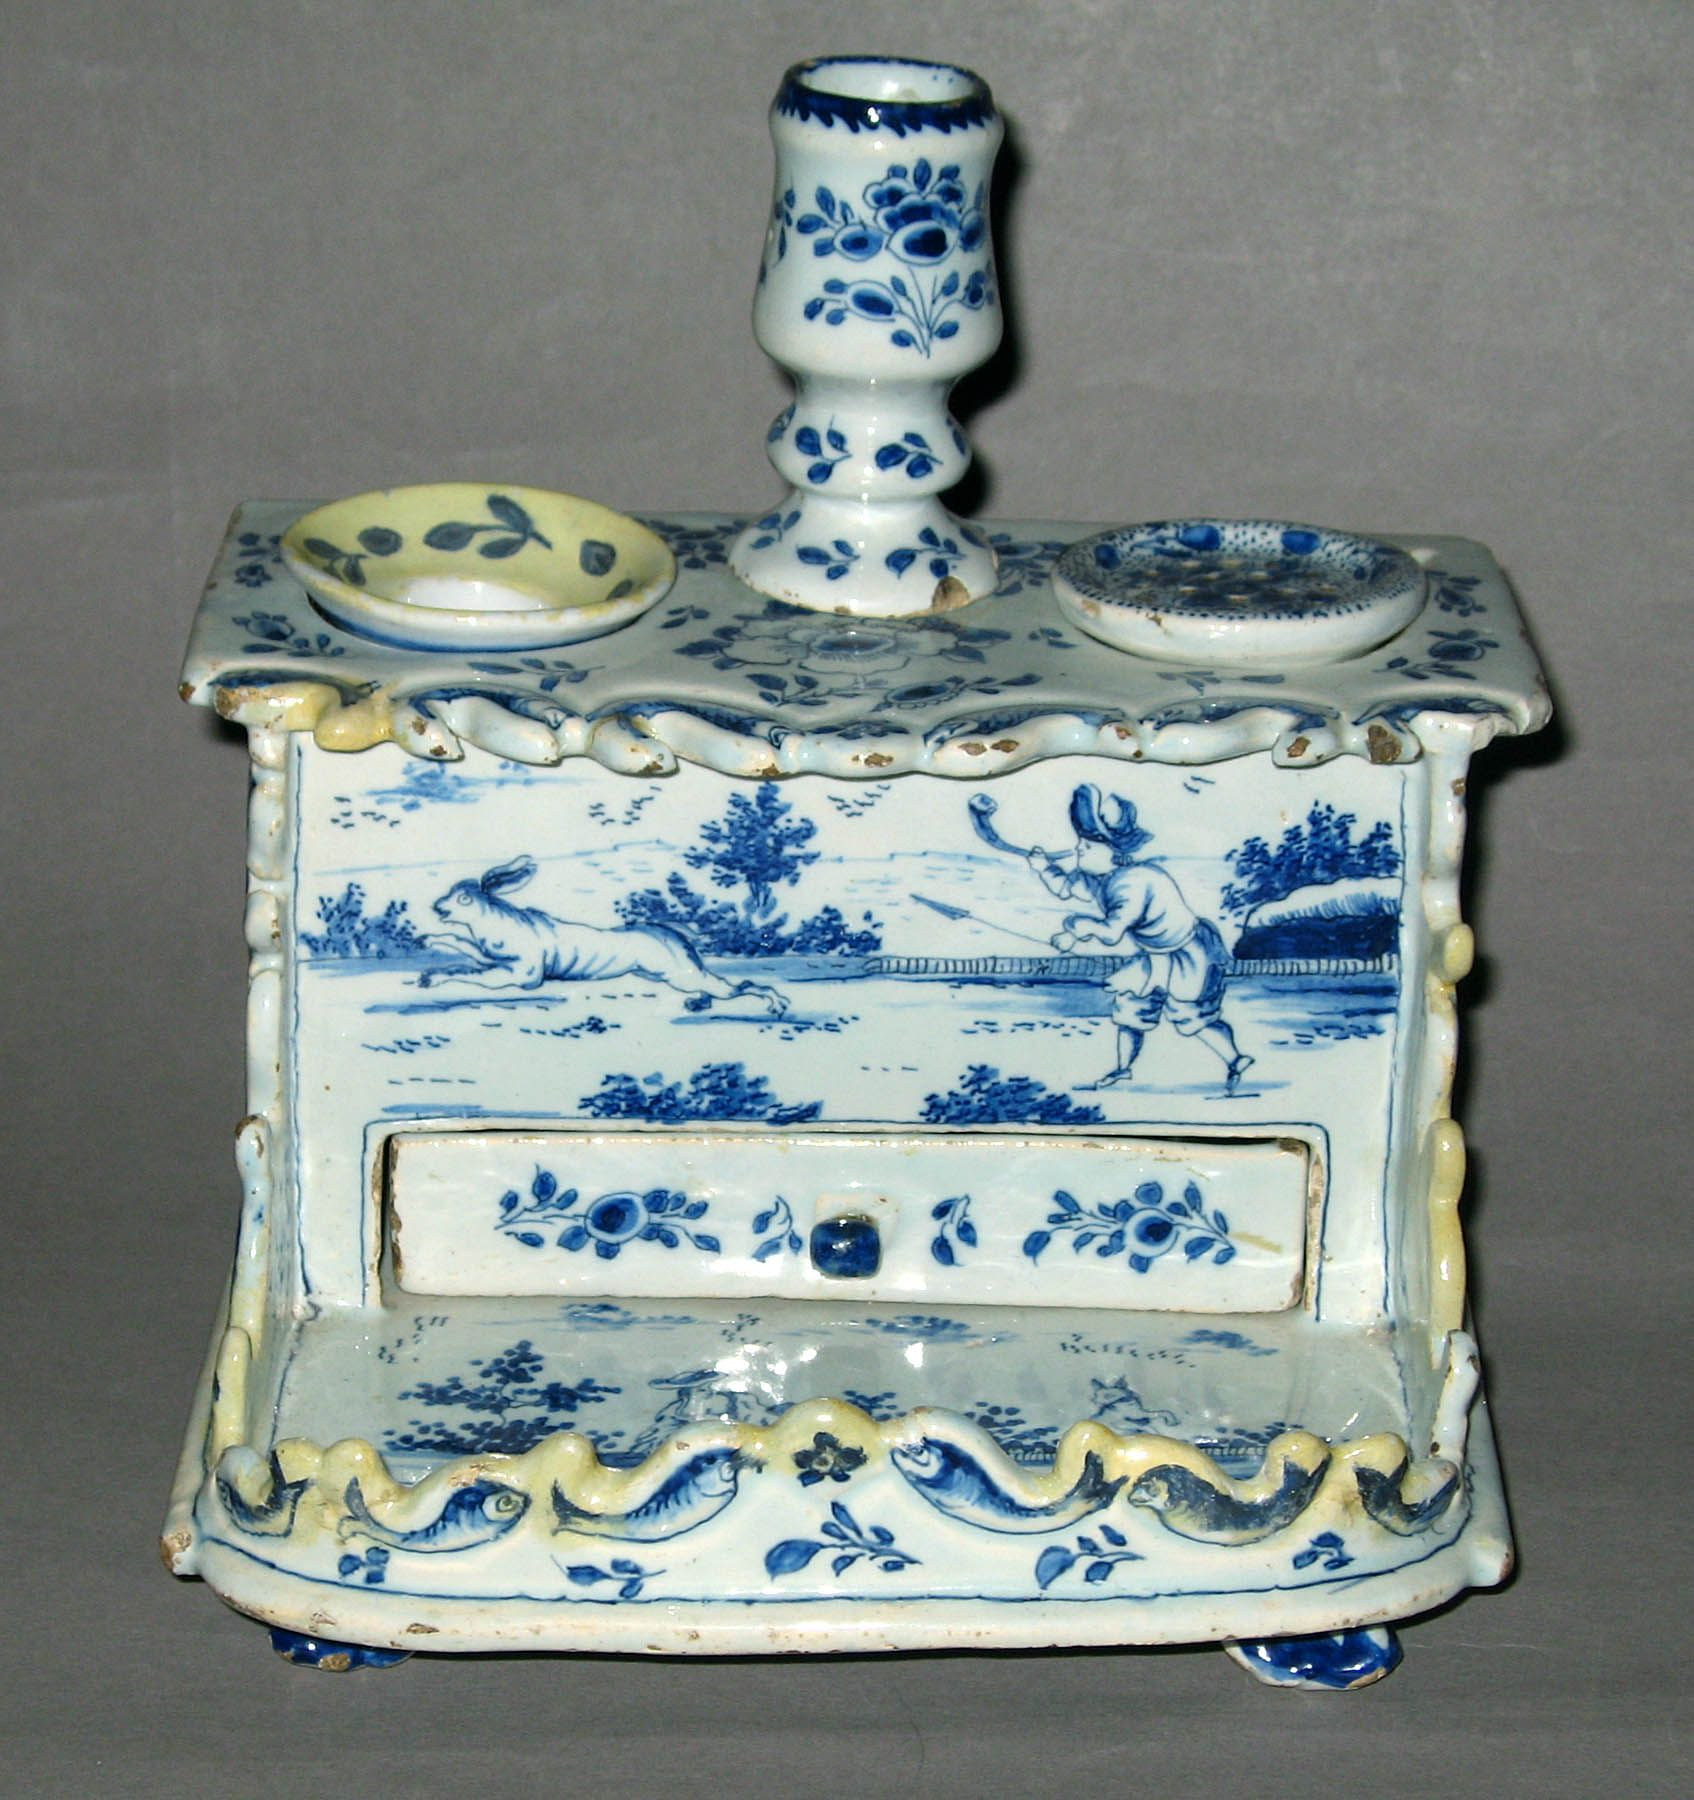 Ceramics Inkstand Inkwell Search The Collection Winterthur Museum Delft White Ceramics Inkwell